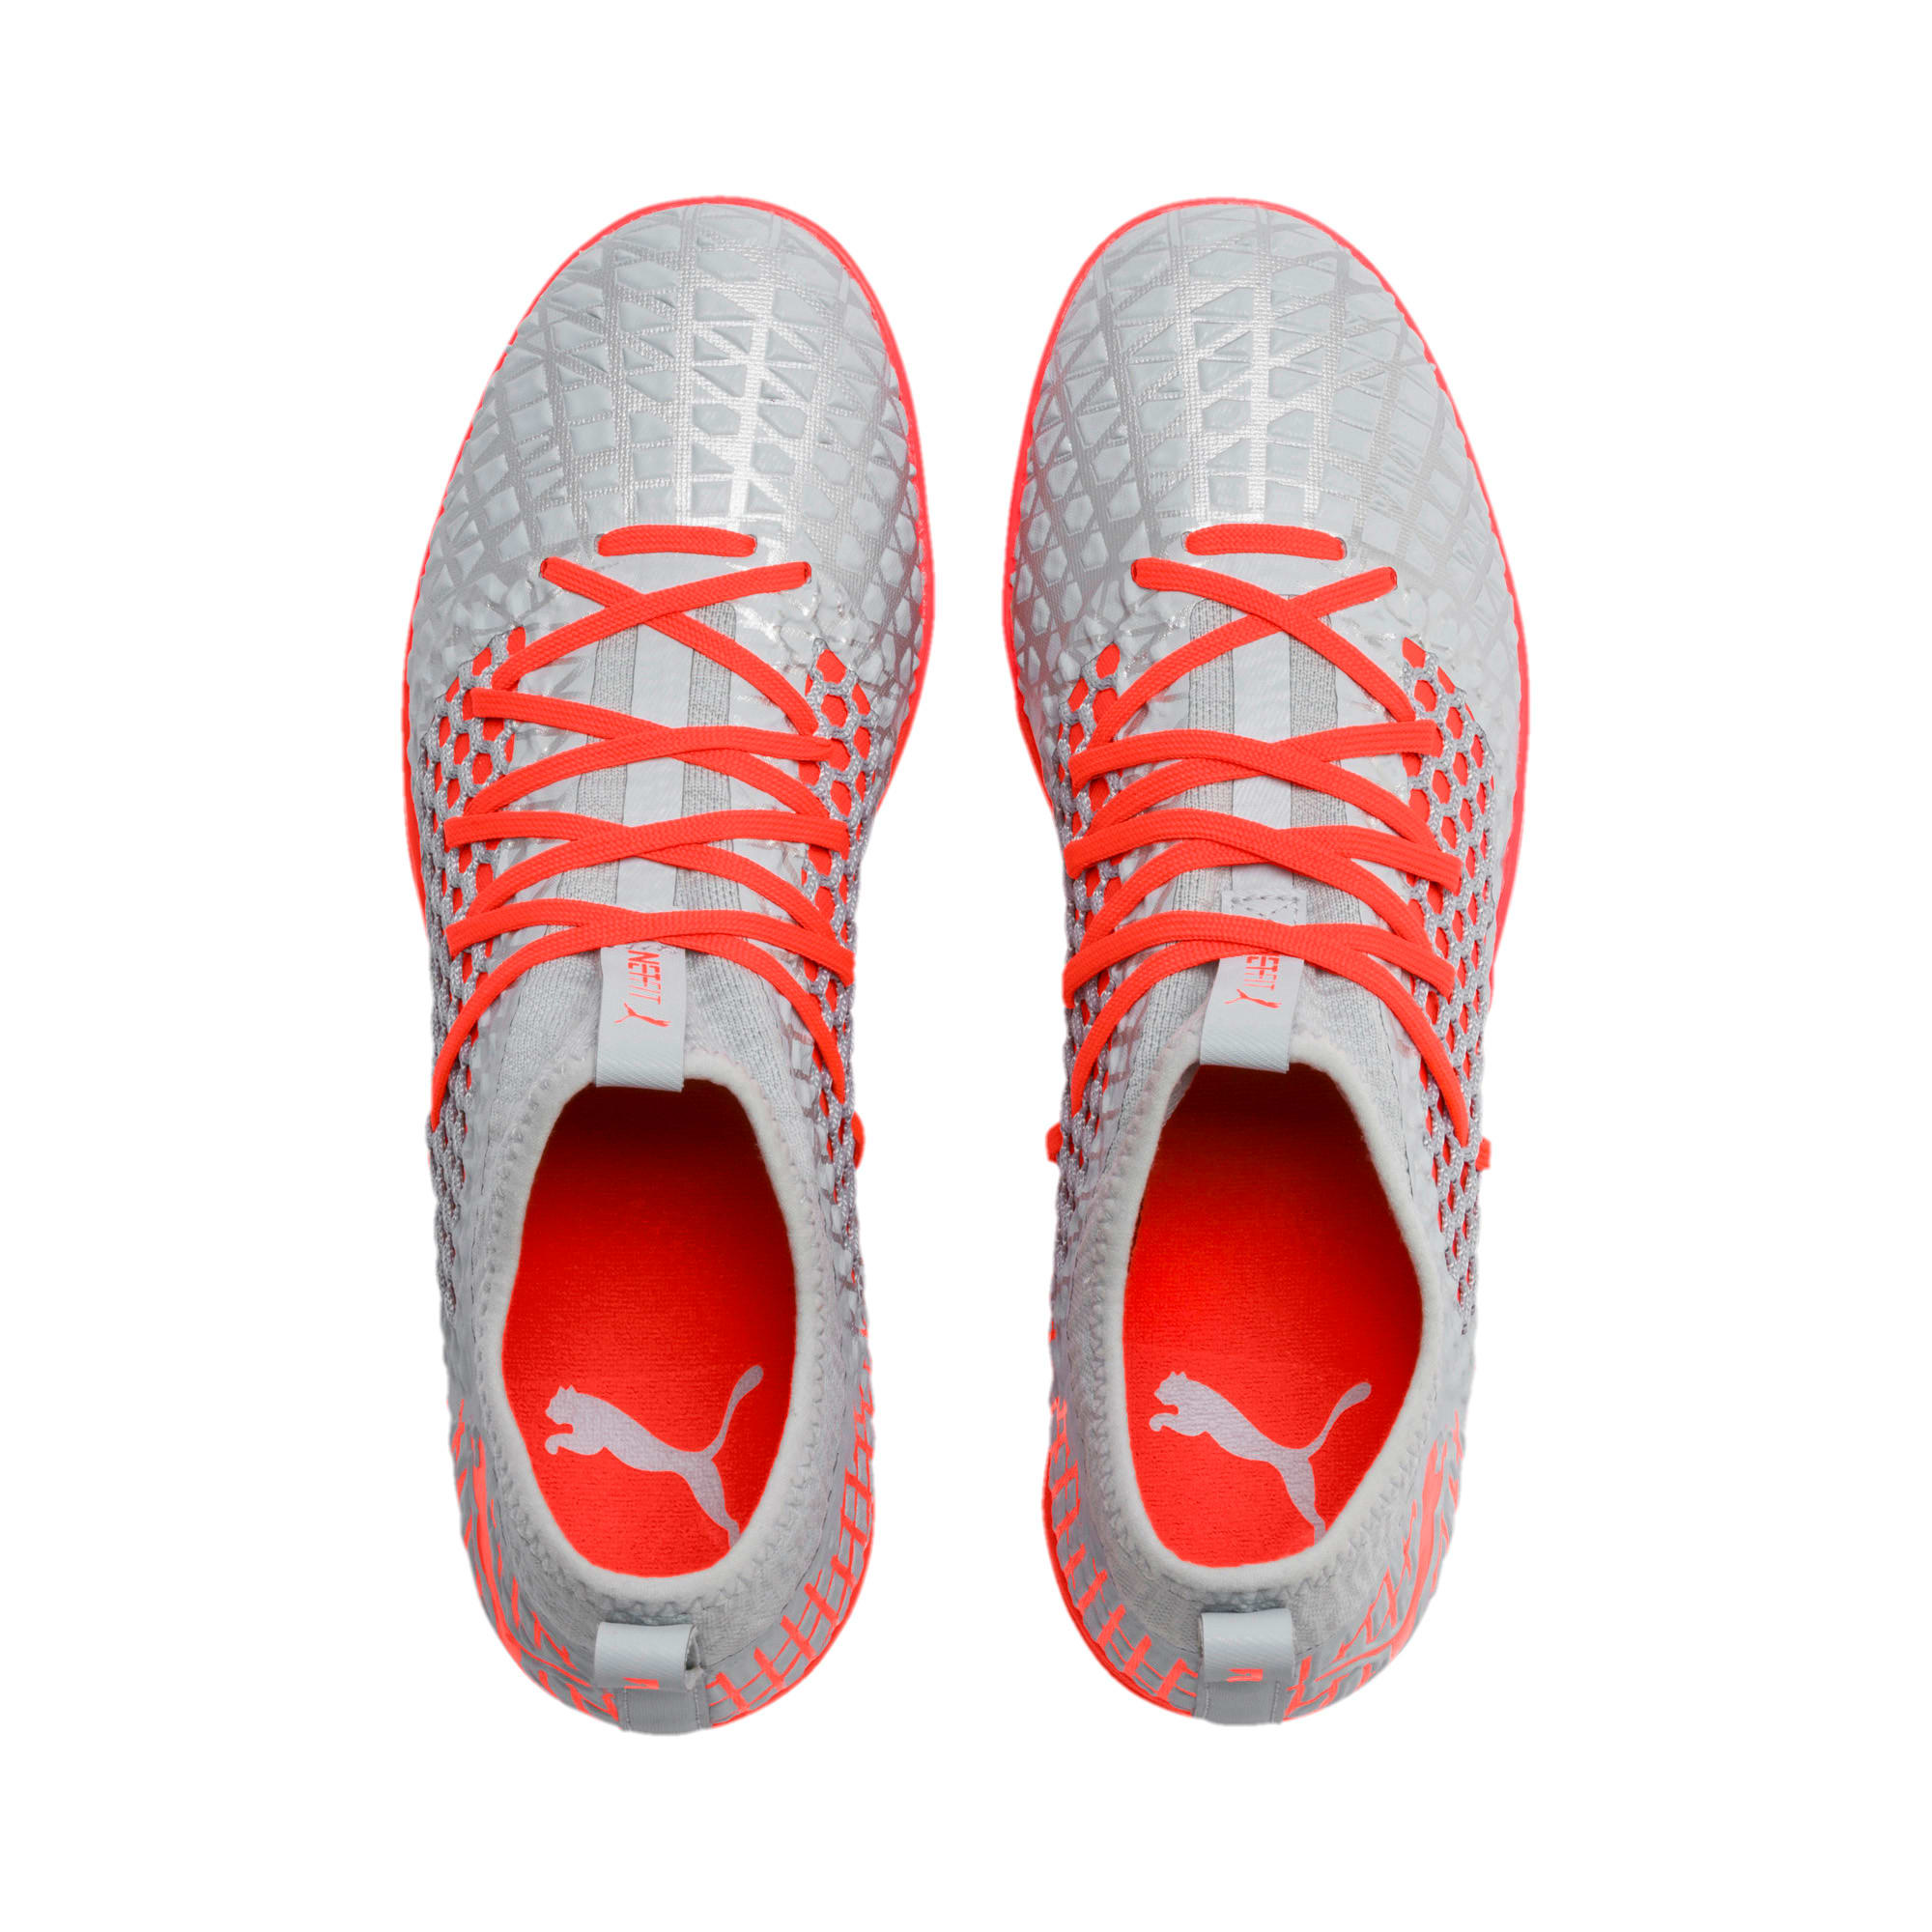 Thumbnail 7 of FUTURE 4.3 NETFIT IT Men's Football Boots, Glacial Blue-Nrgy Red, medium